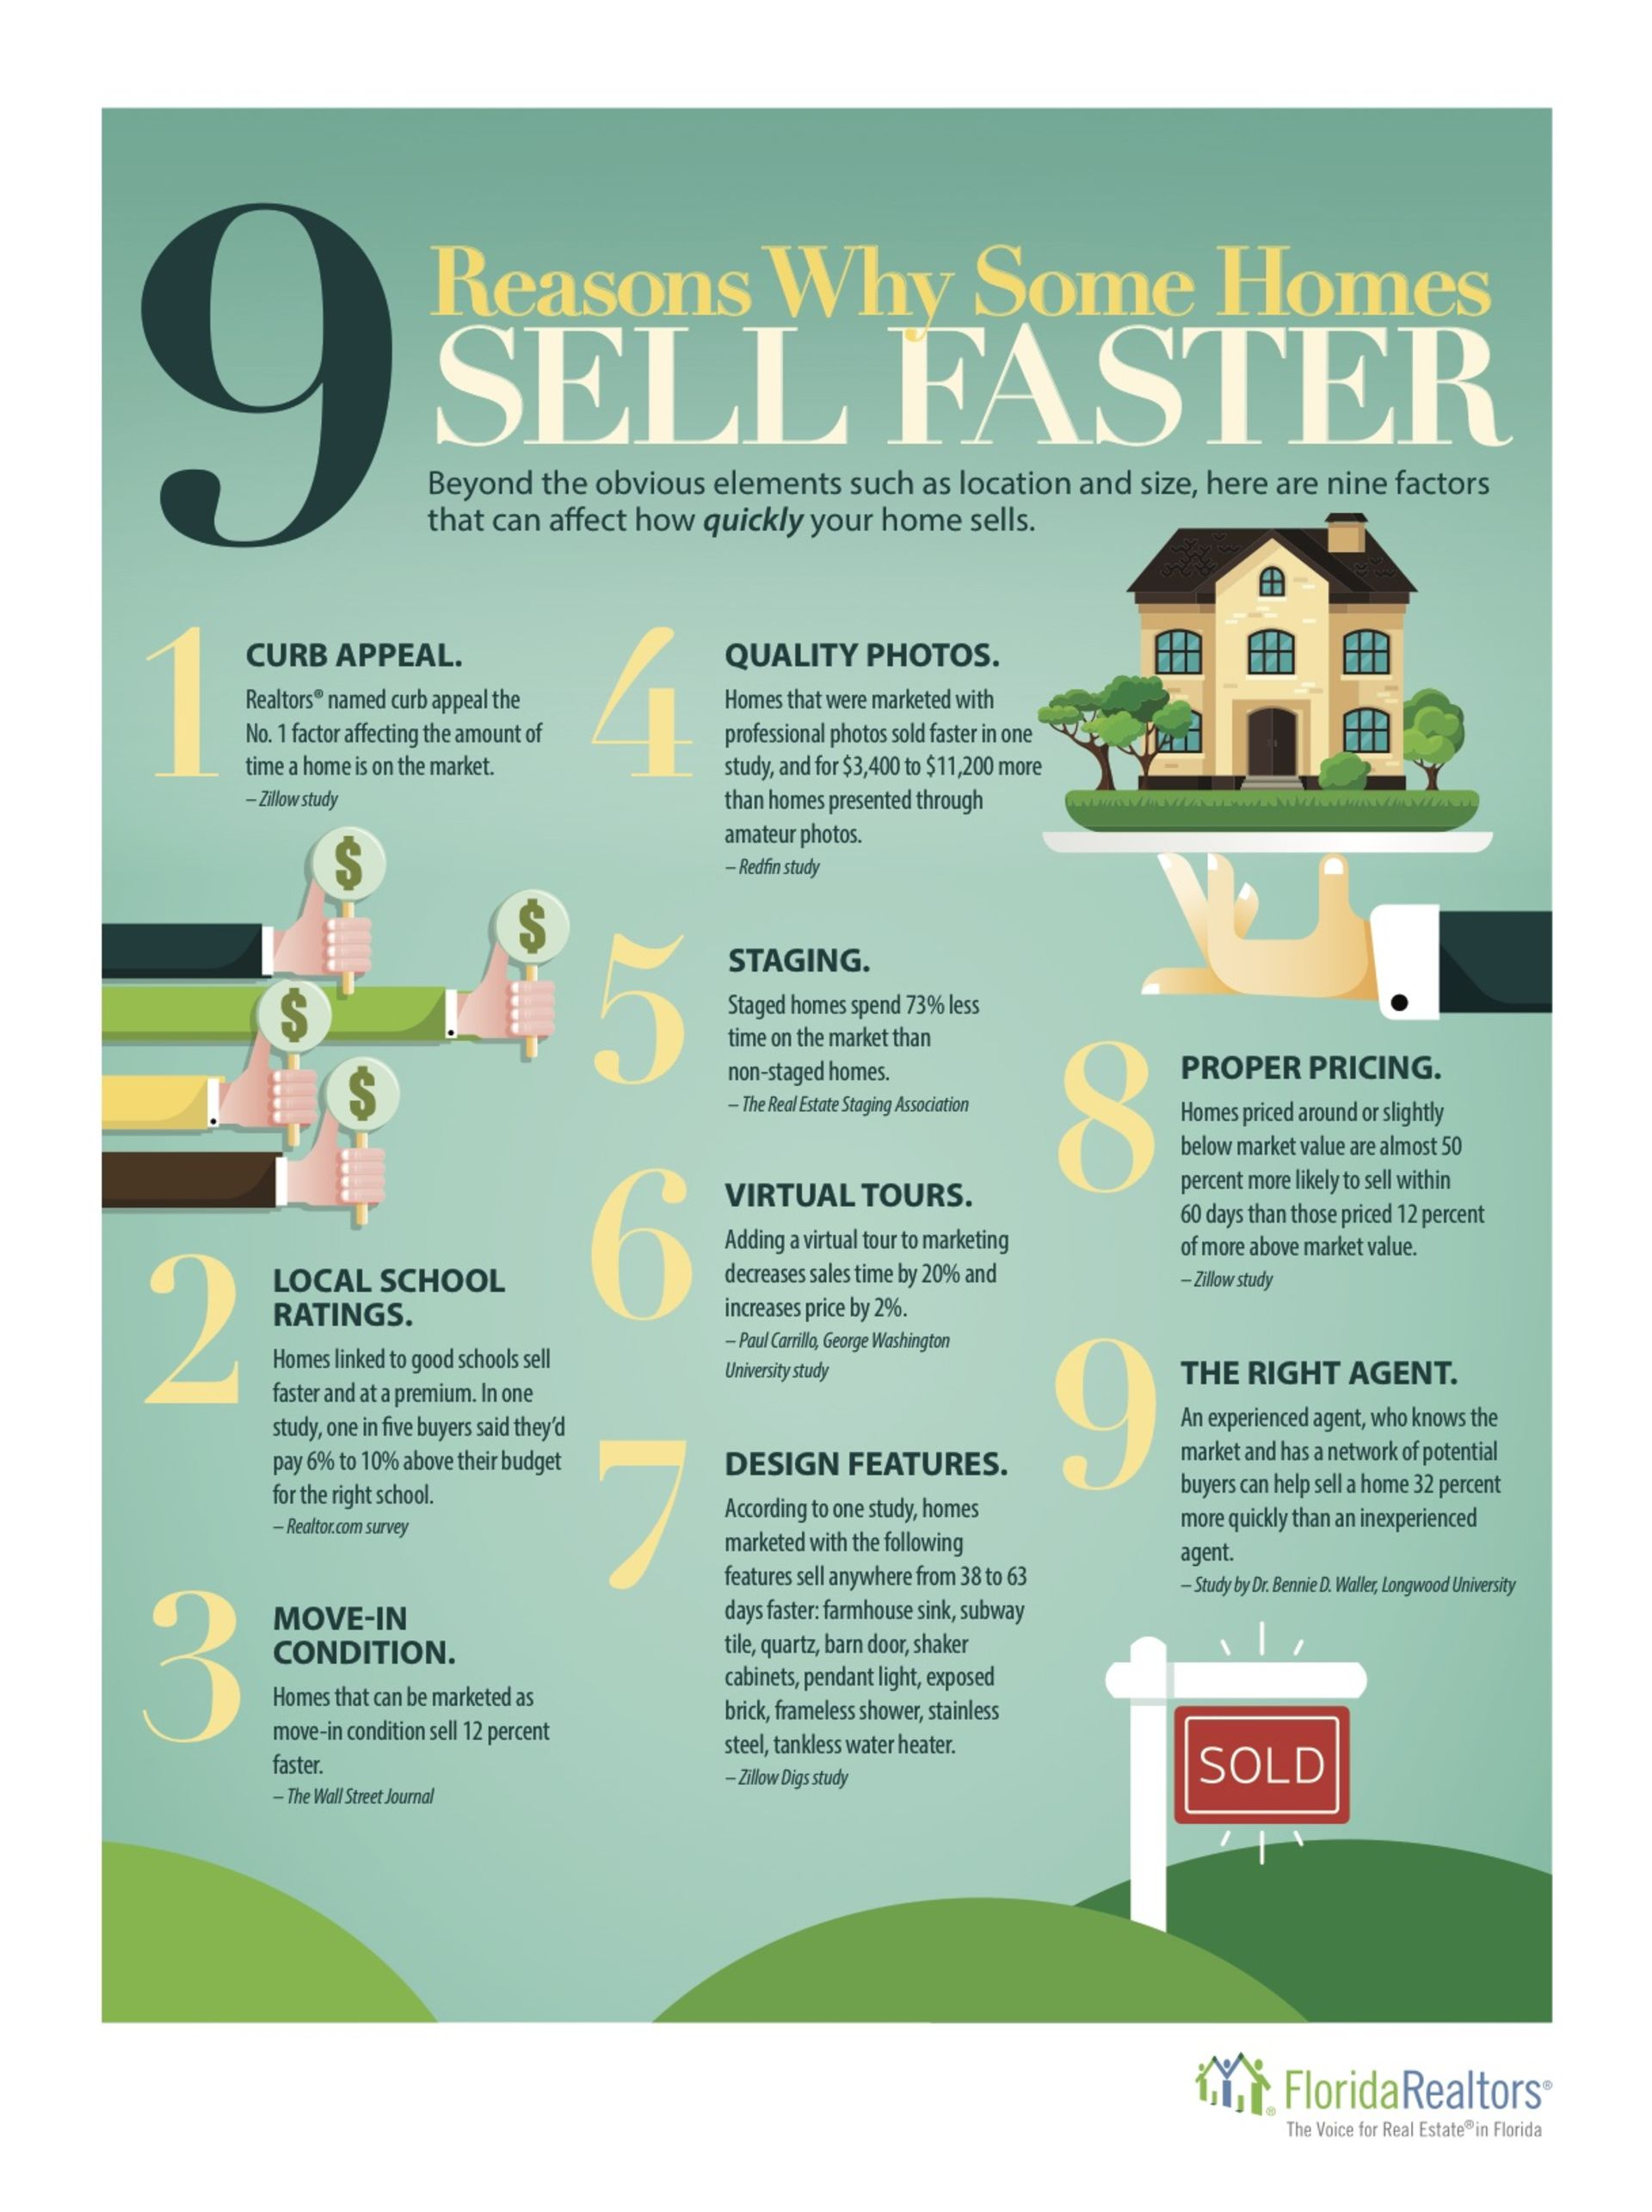 9 REASONS WHY SOME HOMES SELL FASTER